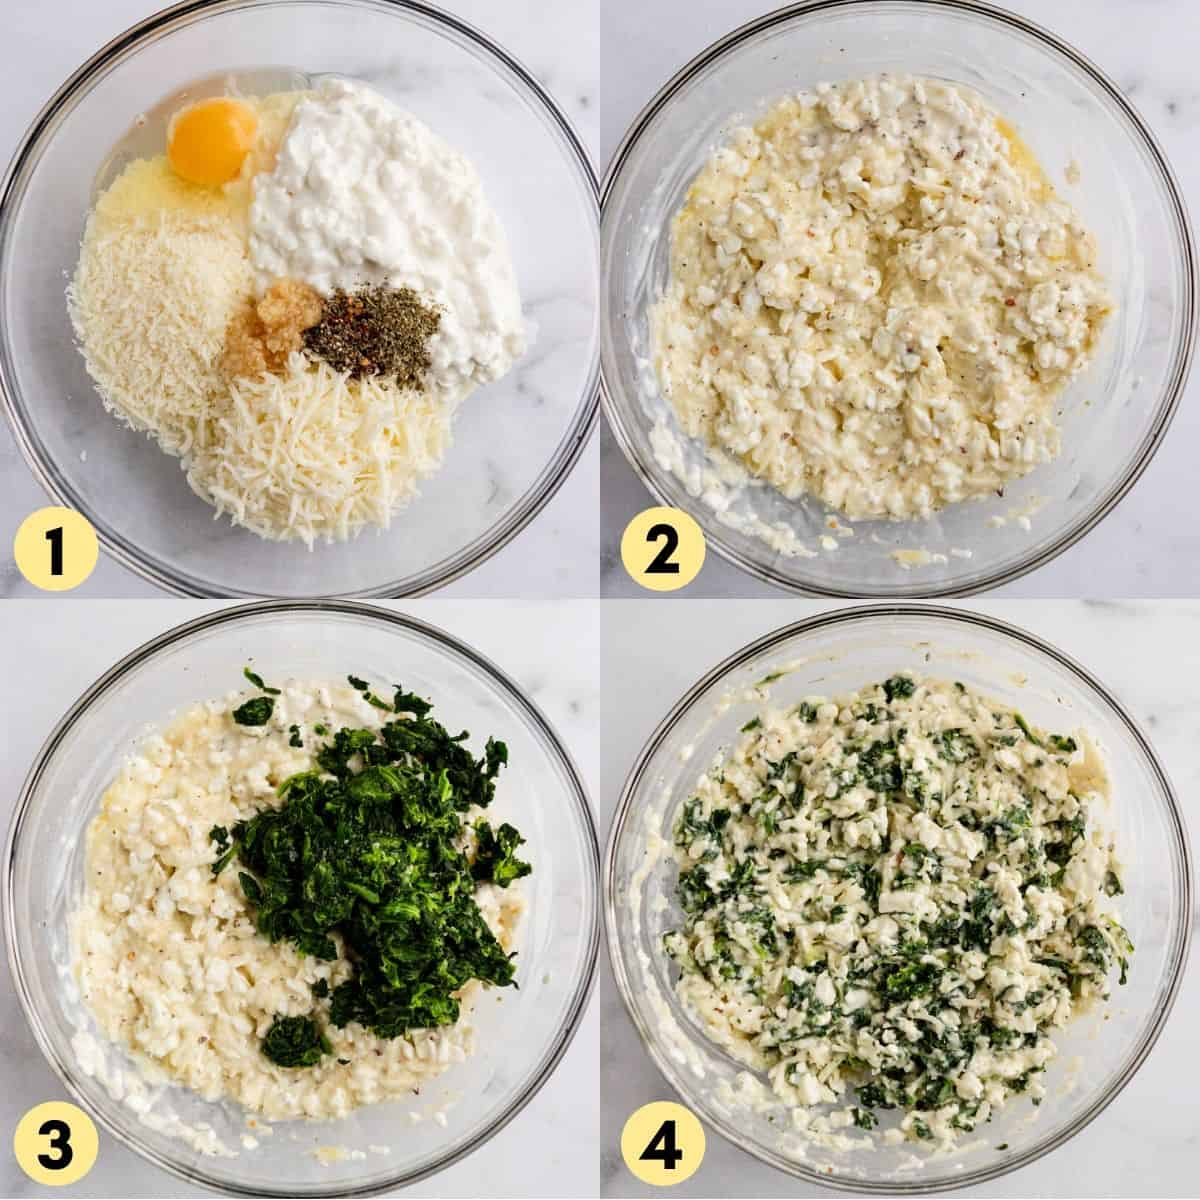 Mixture of cheese, egg and spinach in bowl.